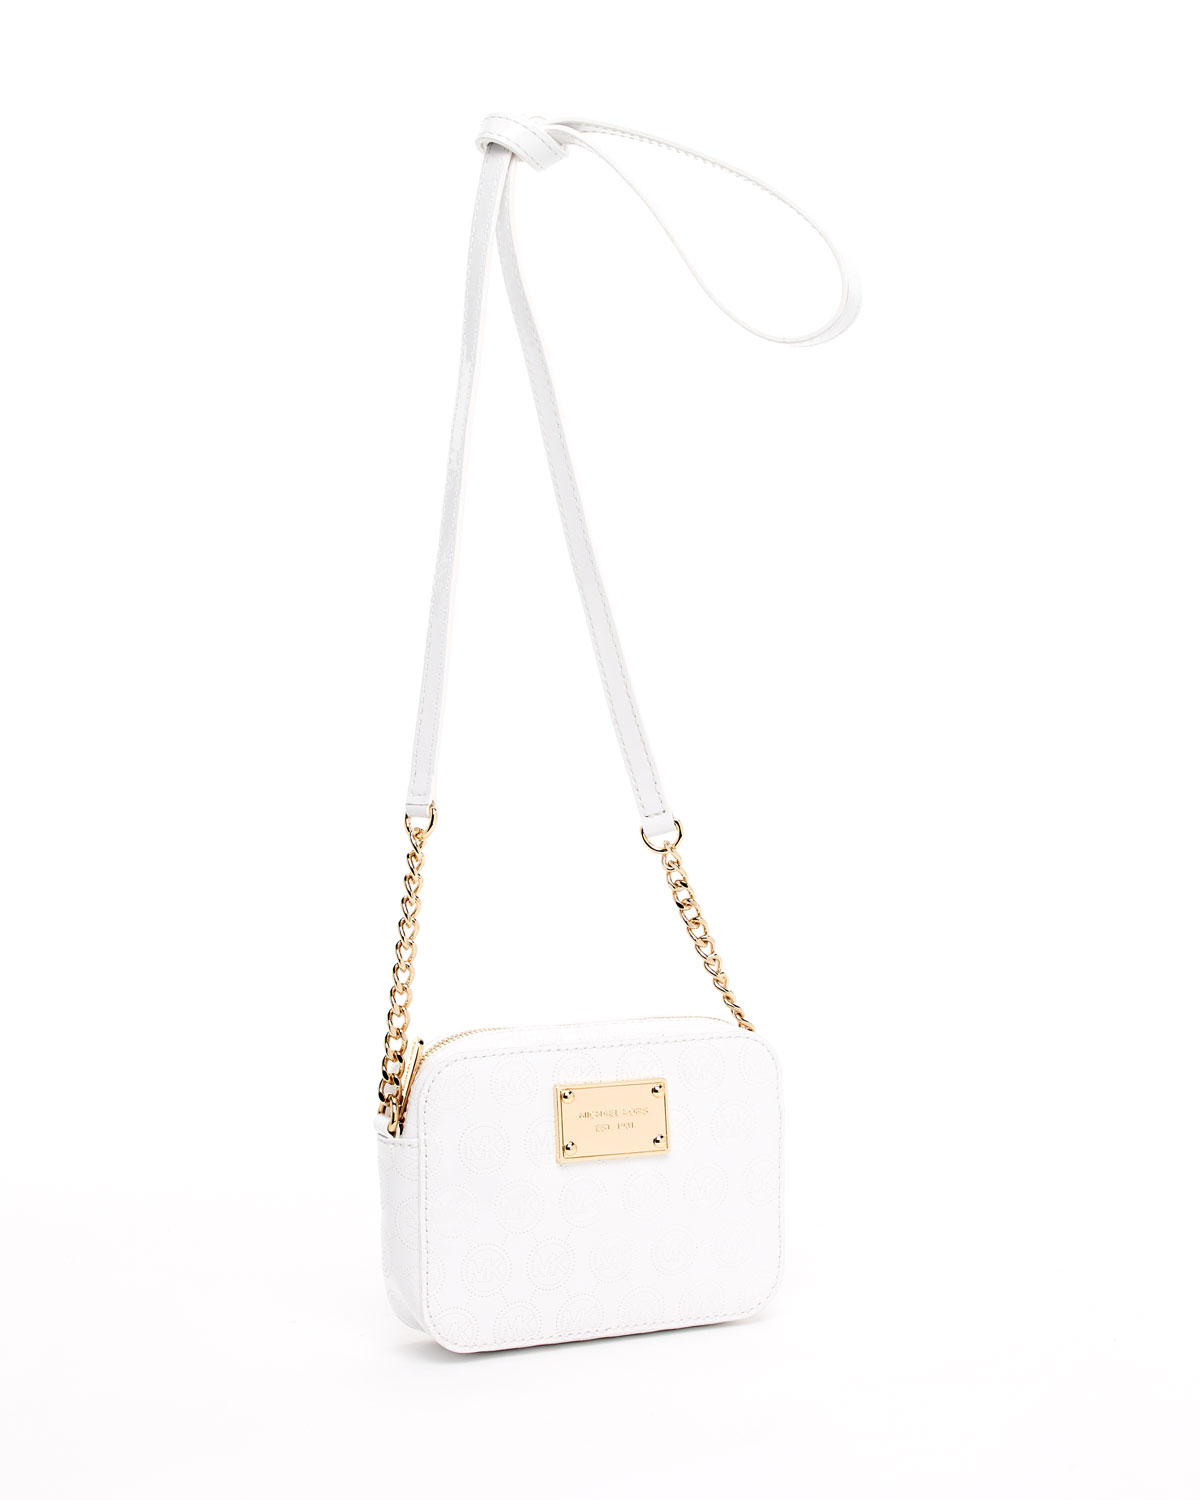 82eecaf67dfc Michael Kors Jet Set Crossbody in White - Lyst